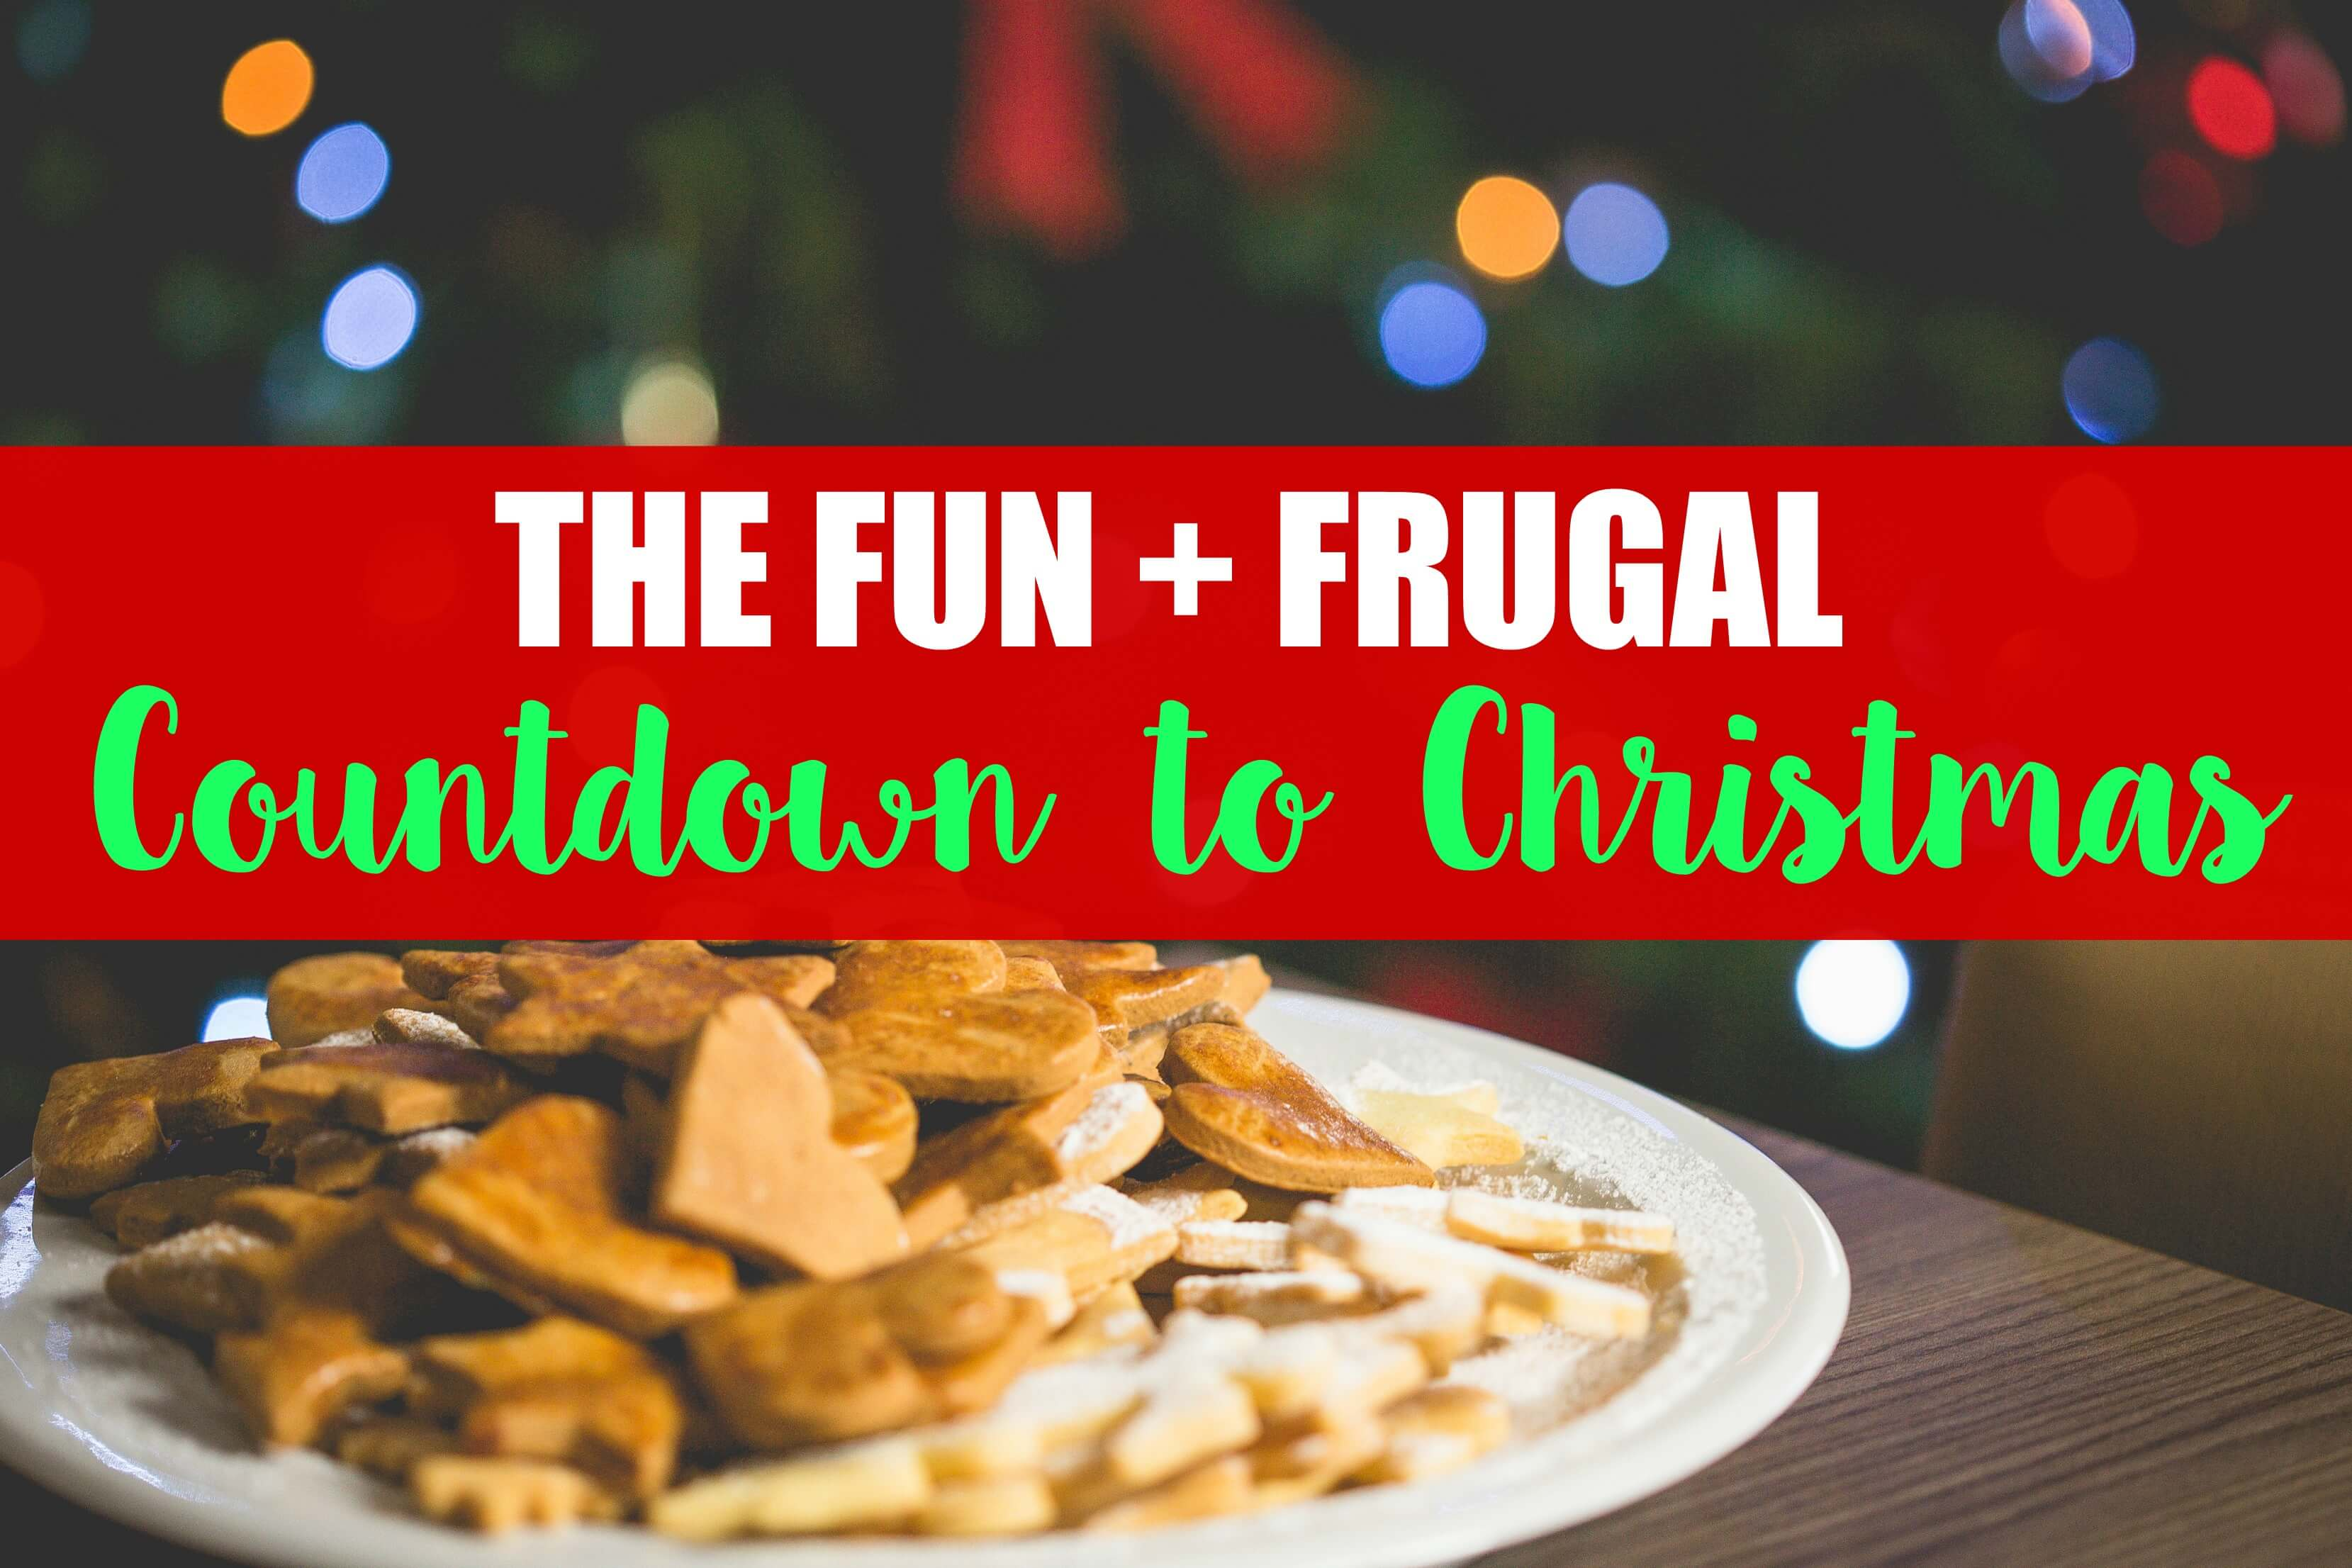 The Fun & Frugal Countdown to Christmas